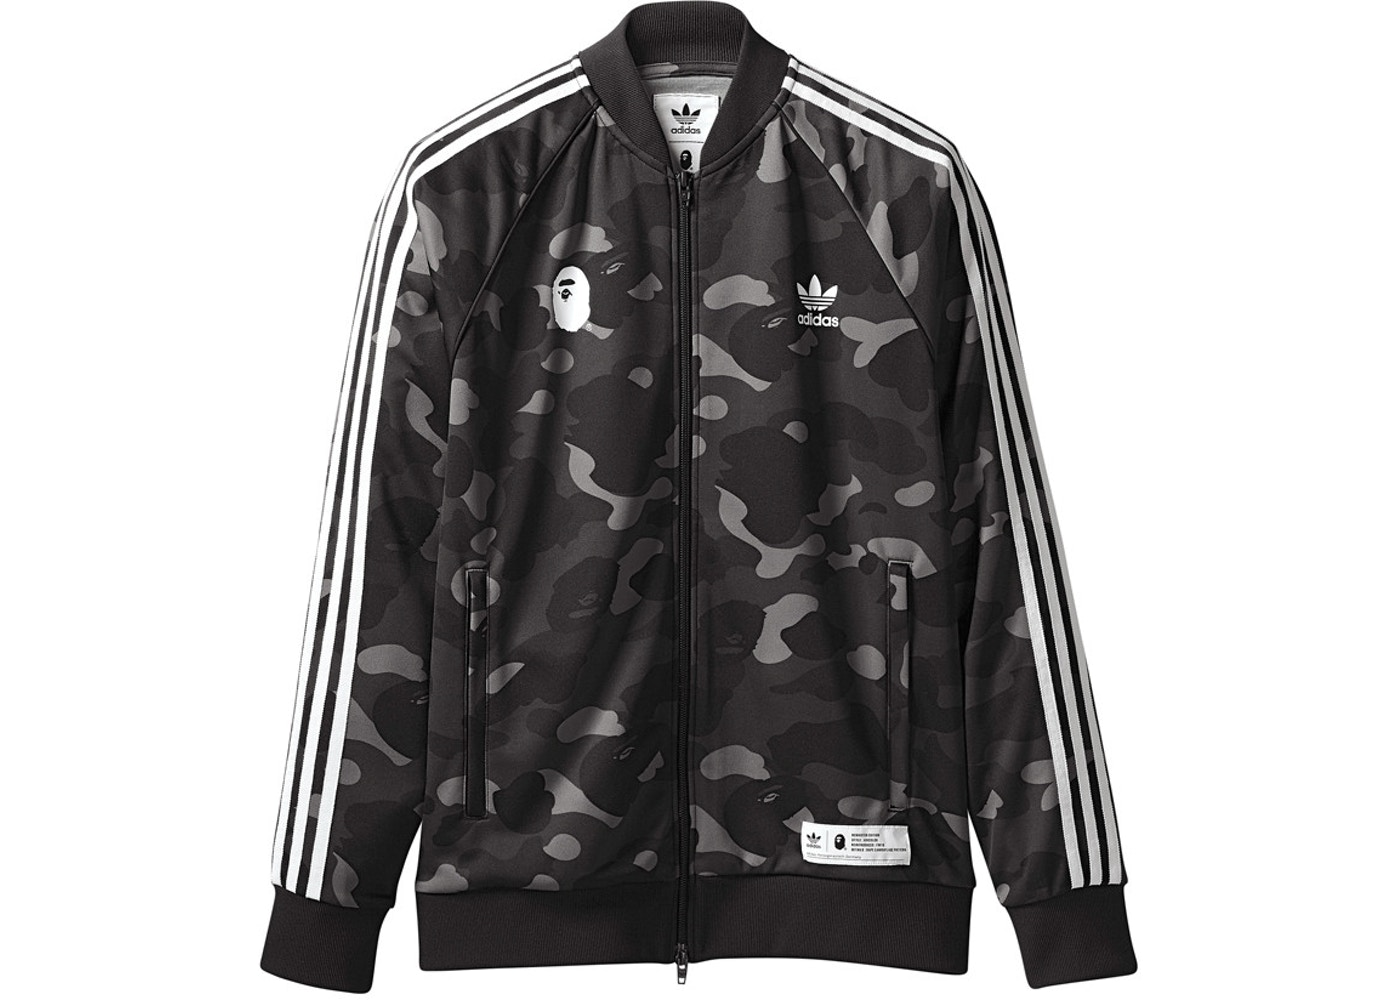 Adidas Bape Jacket Men Style Year of Clean Water